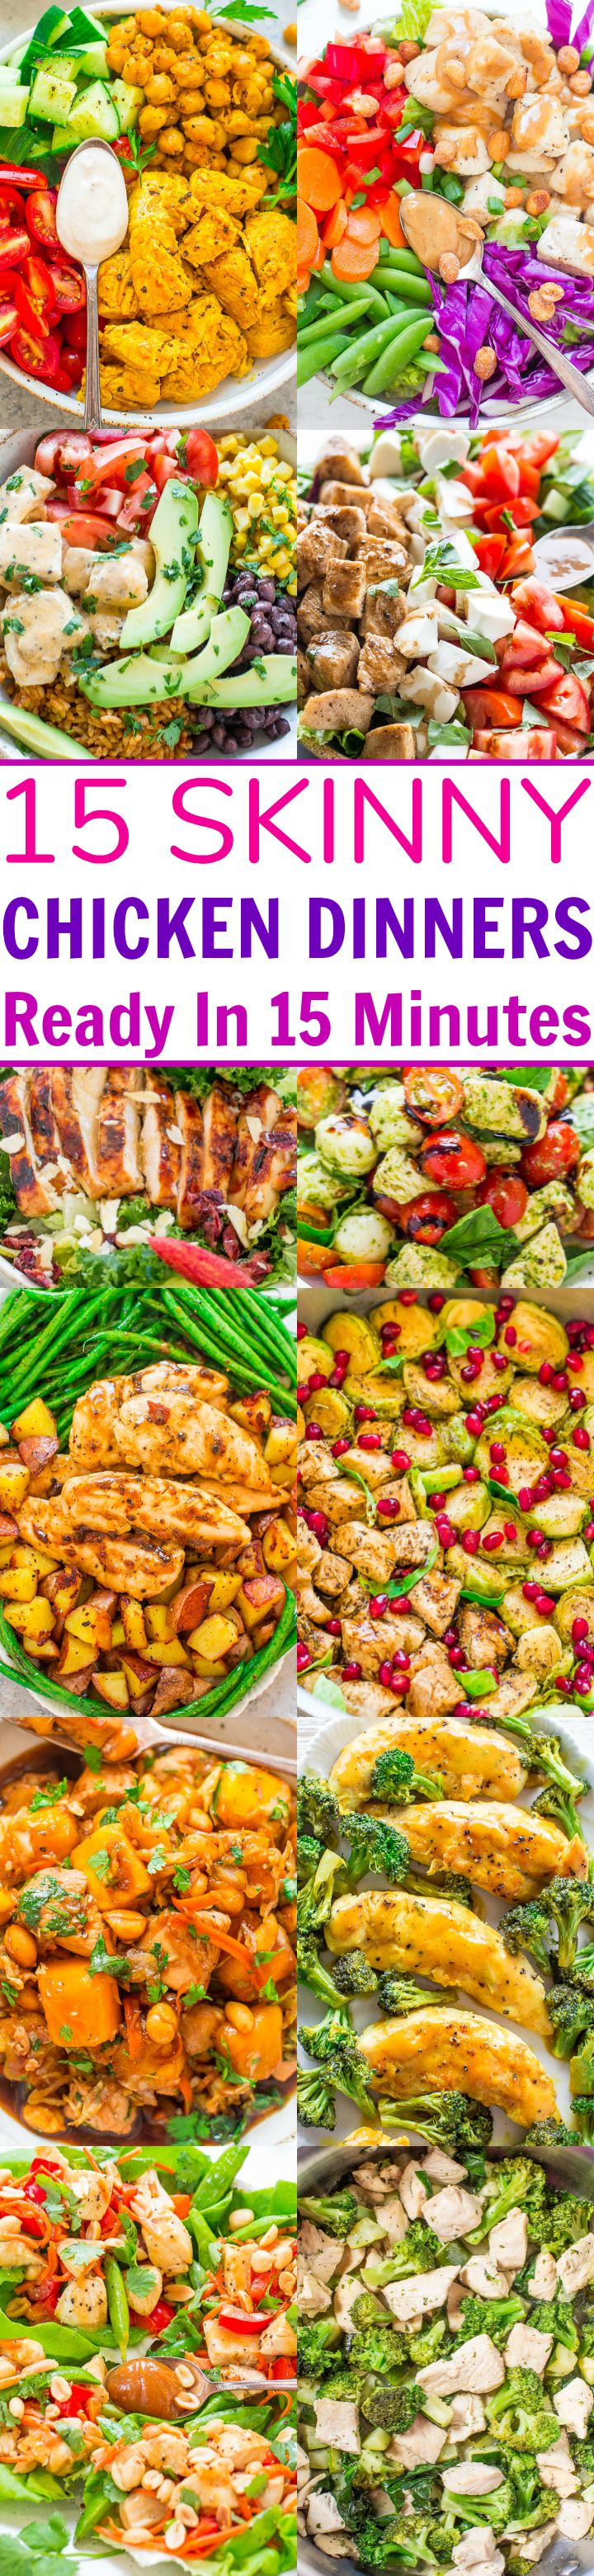 15 Skinny Chicken Dinners Ready in 15 Minutes - FAST, easy, gluten-free recipes on the SKINNIER side!! You won't miss the fat and calories because there's so much FLAVOR! Perfect for busy weeknights and there's more than than just salads!!